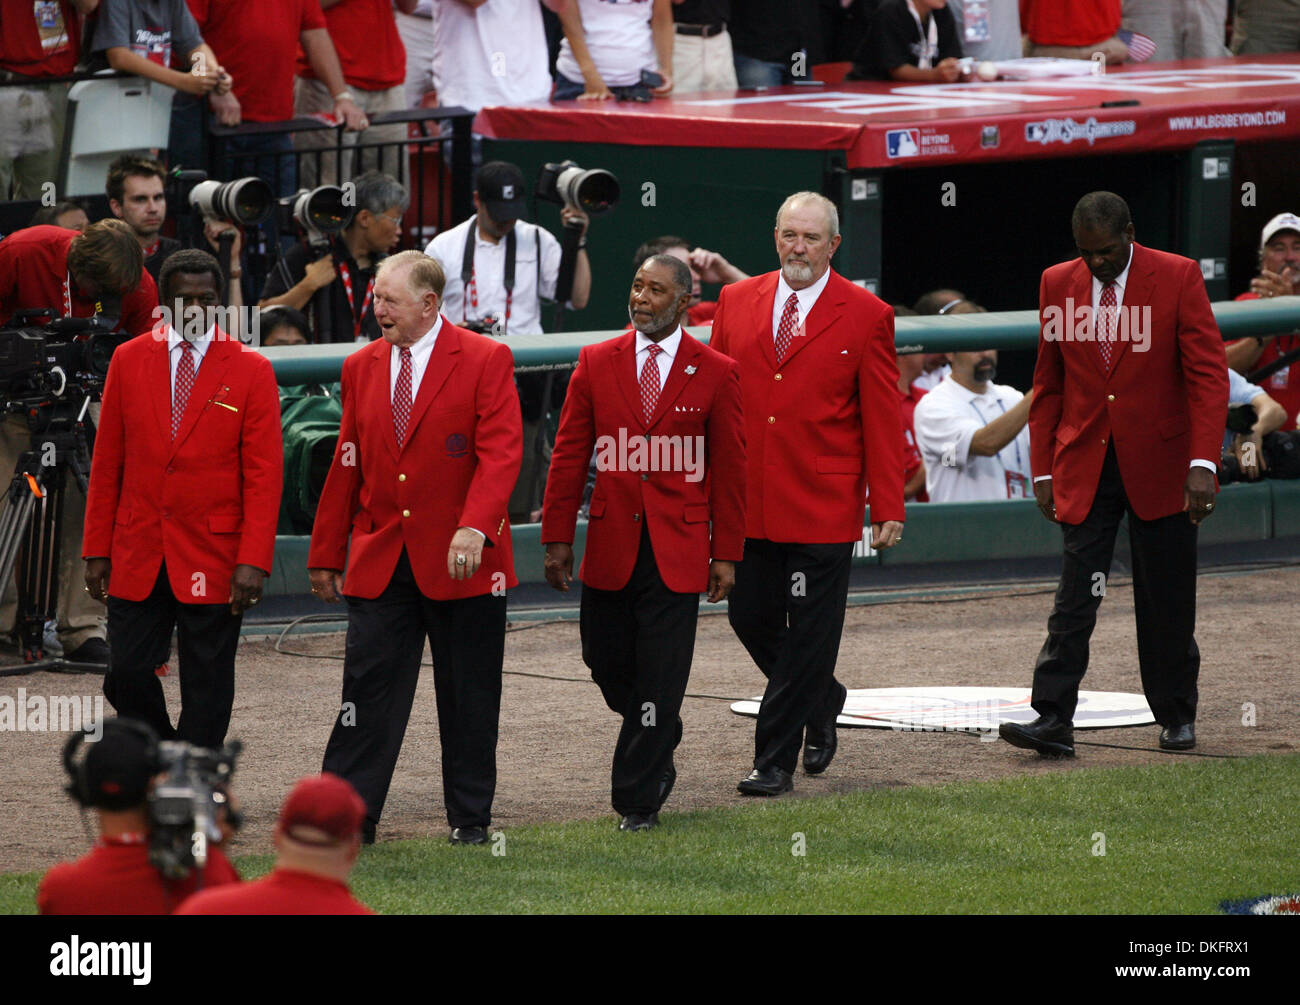 Jul 14, 2009 - St. Louis, Missouri, USA - MLB Baseball - Cardinal greats (L-R) LOU BROCK, RED SCHOENDIENST, OZZIE SMITH, BRUCE SUTTER, BOB GIBSON, and Stan Musial (not pictured) at the start of Tuesday's MLB All-Star Game at Busch Stadium in downtown St. Louis. (Credit Image: © Robert Cohen/St Louis Post-Dispatch/ZUMA Press) RESTRICTIONS: * Alton, Belleville, Edwardsville, Moline,  - Stock Image